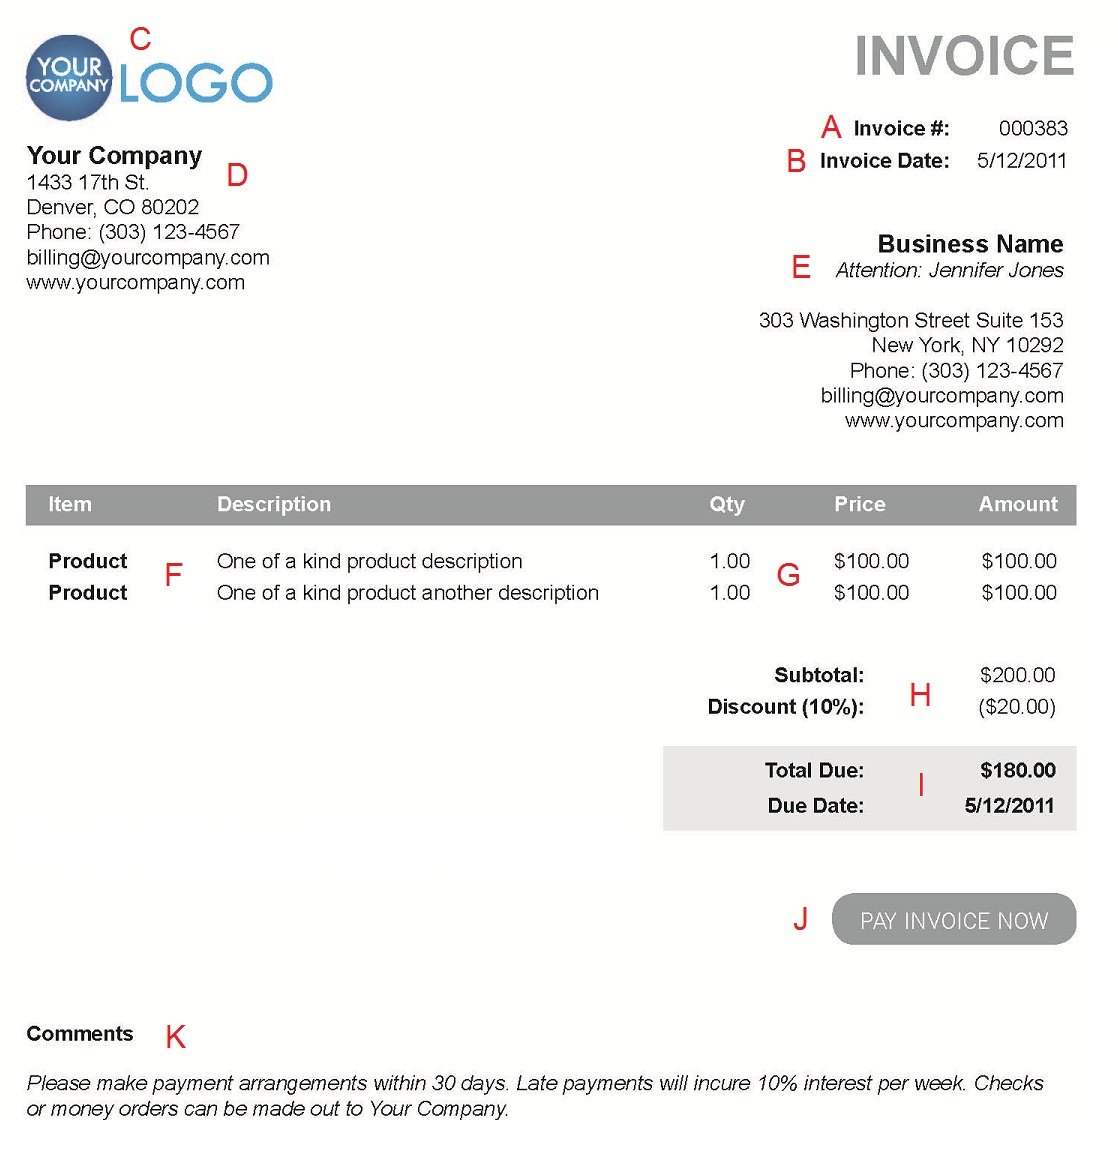 Sandiegolocksmithsus  Mesmerizing The  Different Sections Of An Electronic Payment Invoice With Inspiring A  With Endearing Downloadable Invoice Also Order Invoices In Addition Portable Invoice Printer And Free Invoice Template Google Docs As Well As Electrical Invoice Template Additionally Monthly Invoice Template From Paysimplecom With Sandiegolocksmithsus  Inspiring The  Different Sections Of An Electronic Payment Invoice With Endearing A  And Mesmerizing Downloadable Invoice Also Order Invoices In Addition Portable Invoice Printer From Paysimplecom